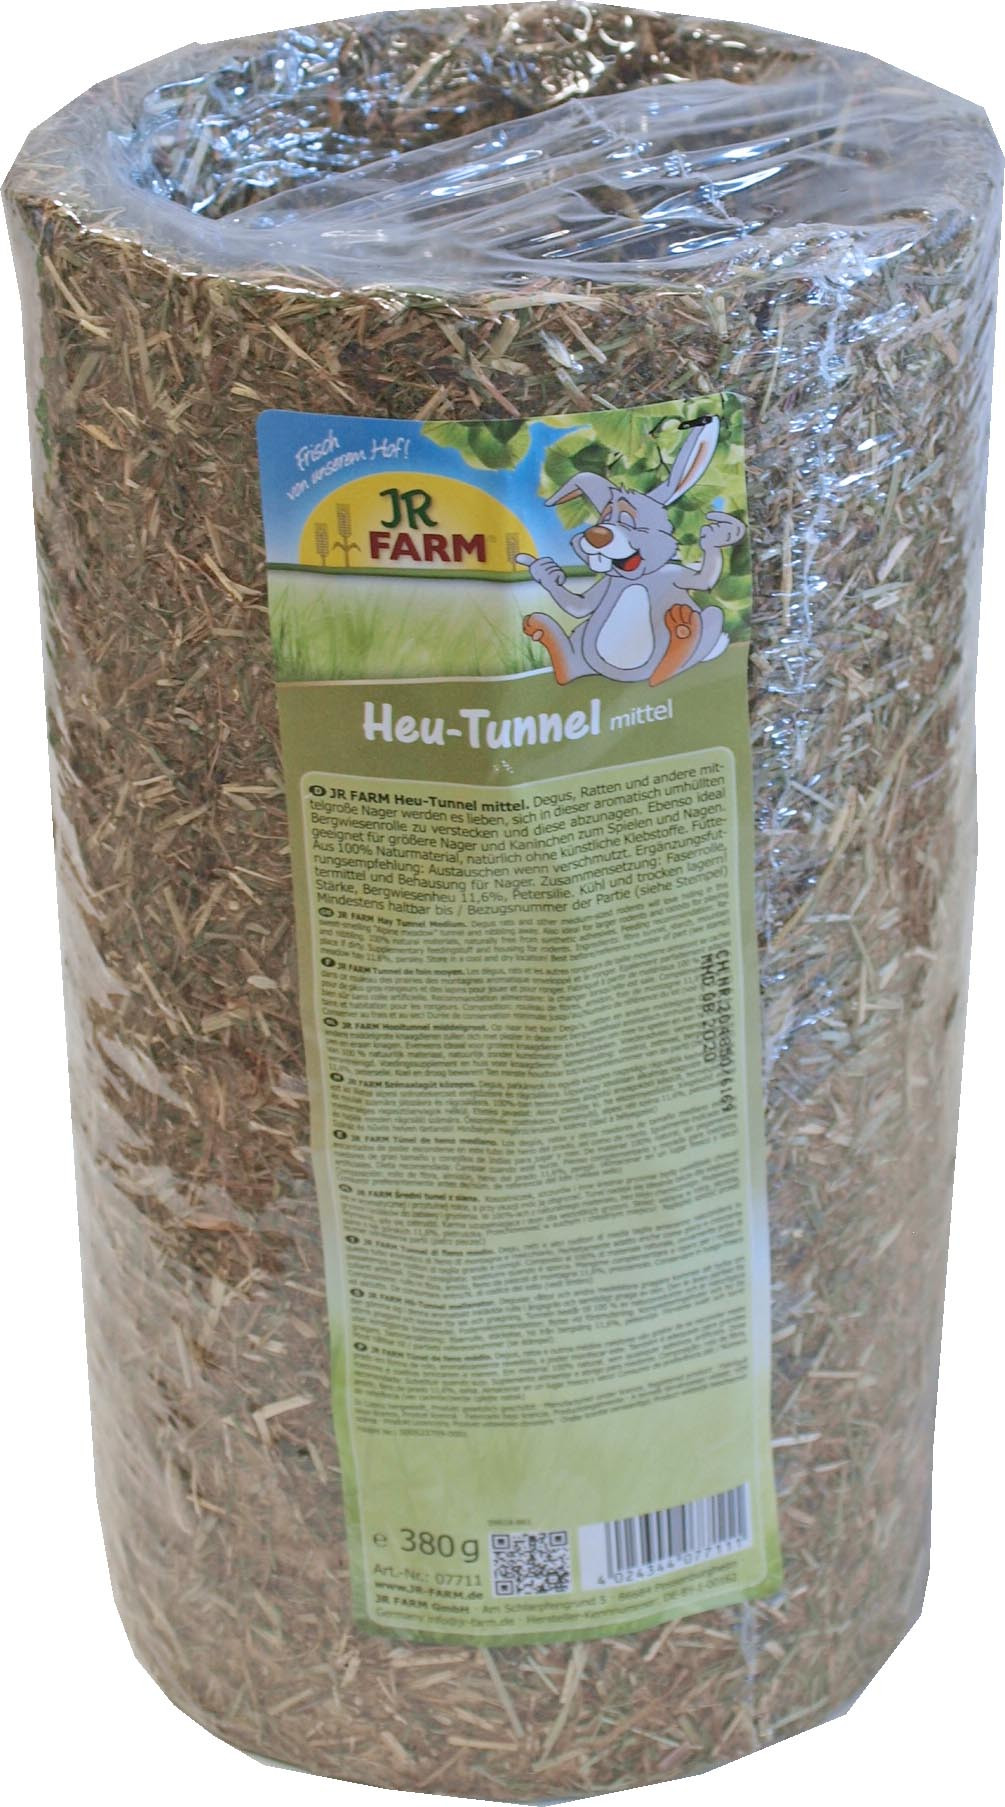 JR Farm hooitunnel middel 380  gr